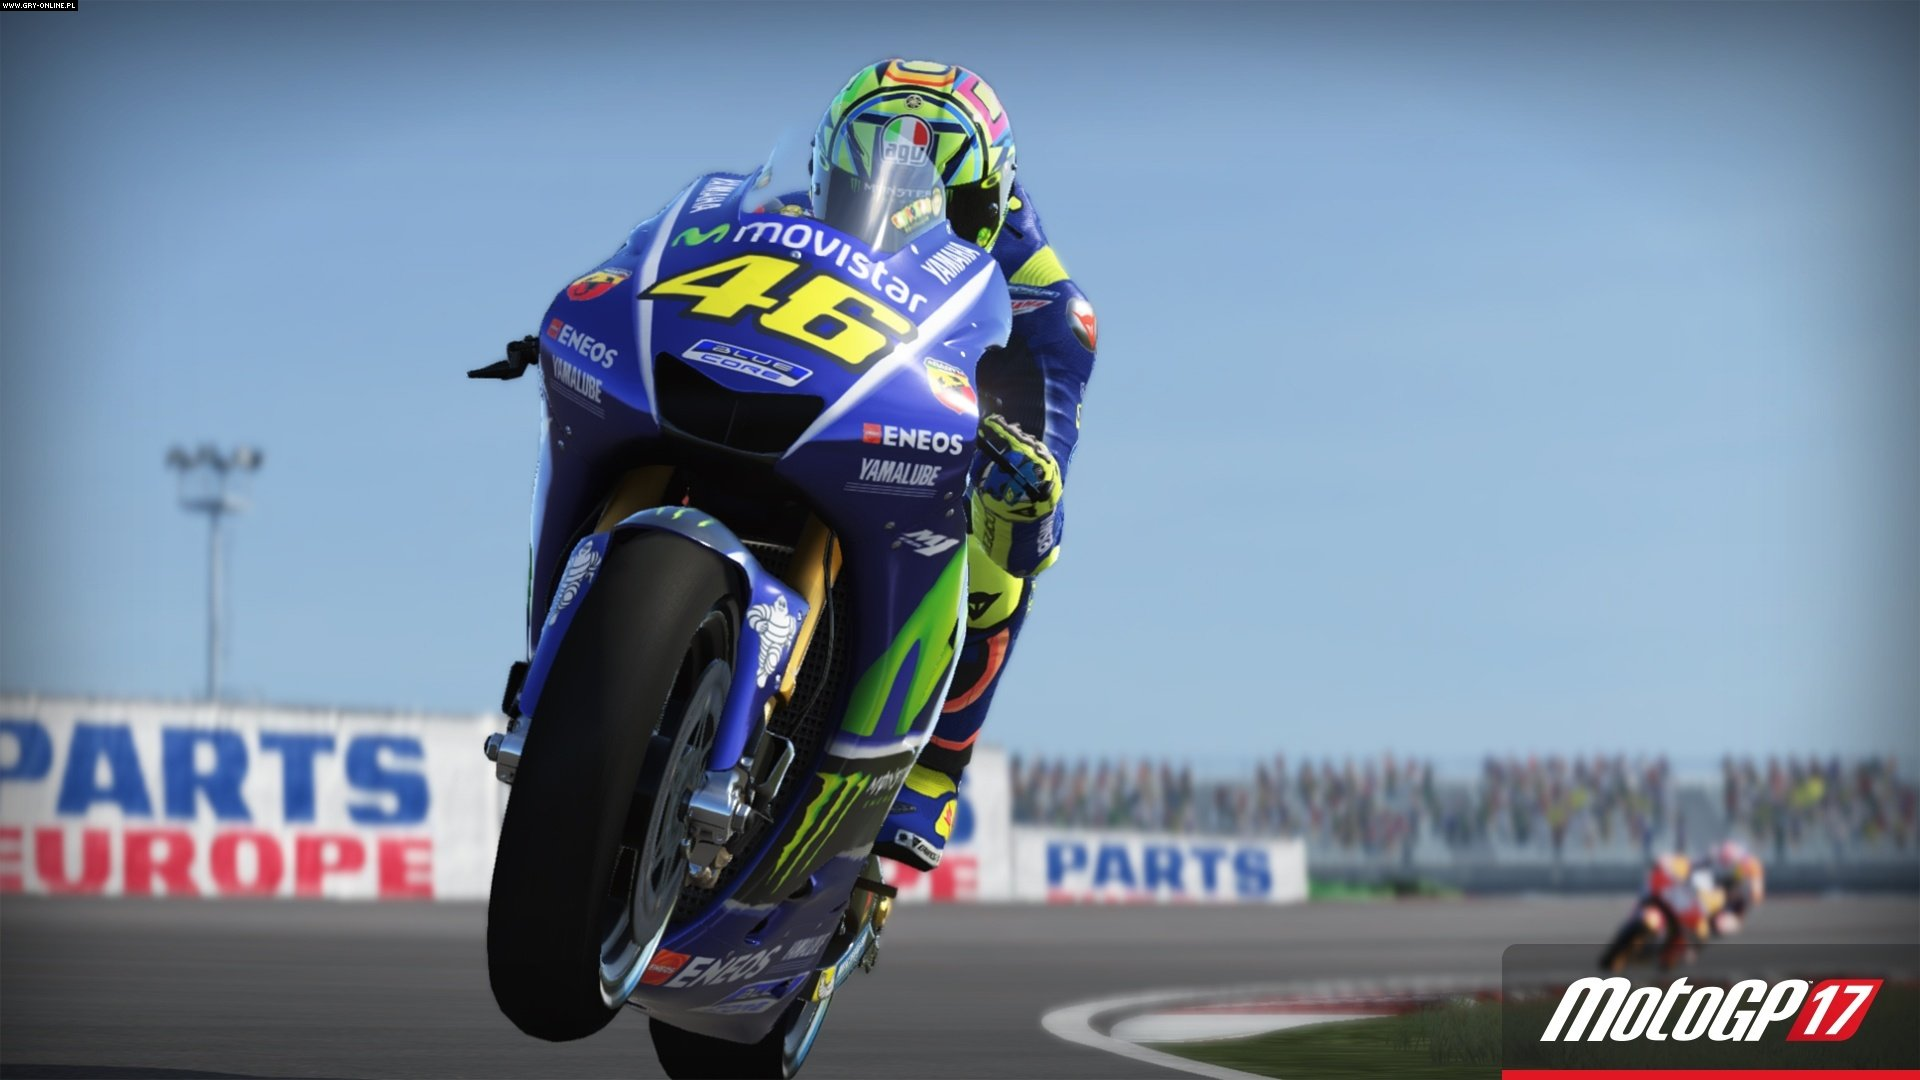 MotoGP 17 PC, PS4, XONE Gry Screen 20/71, Milestone